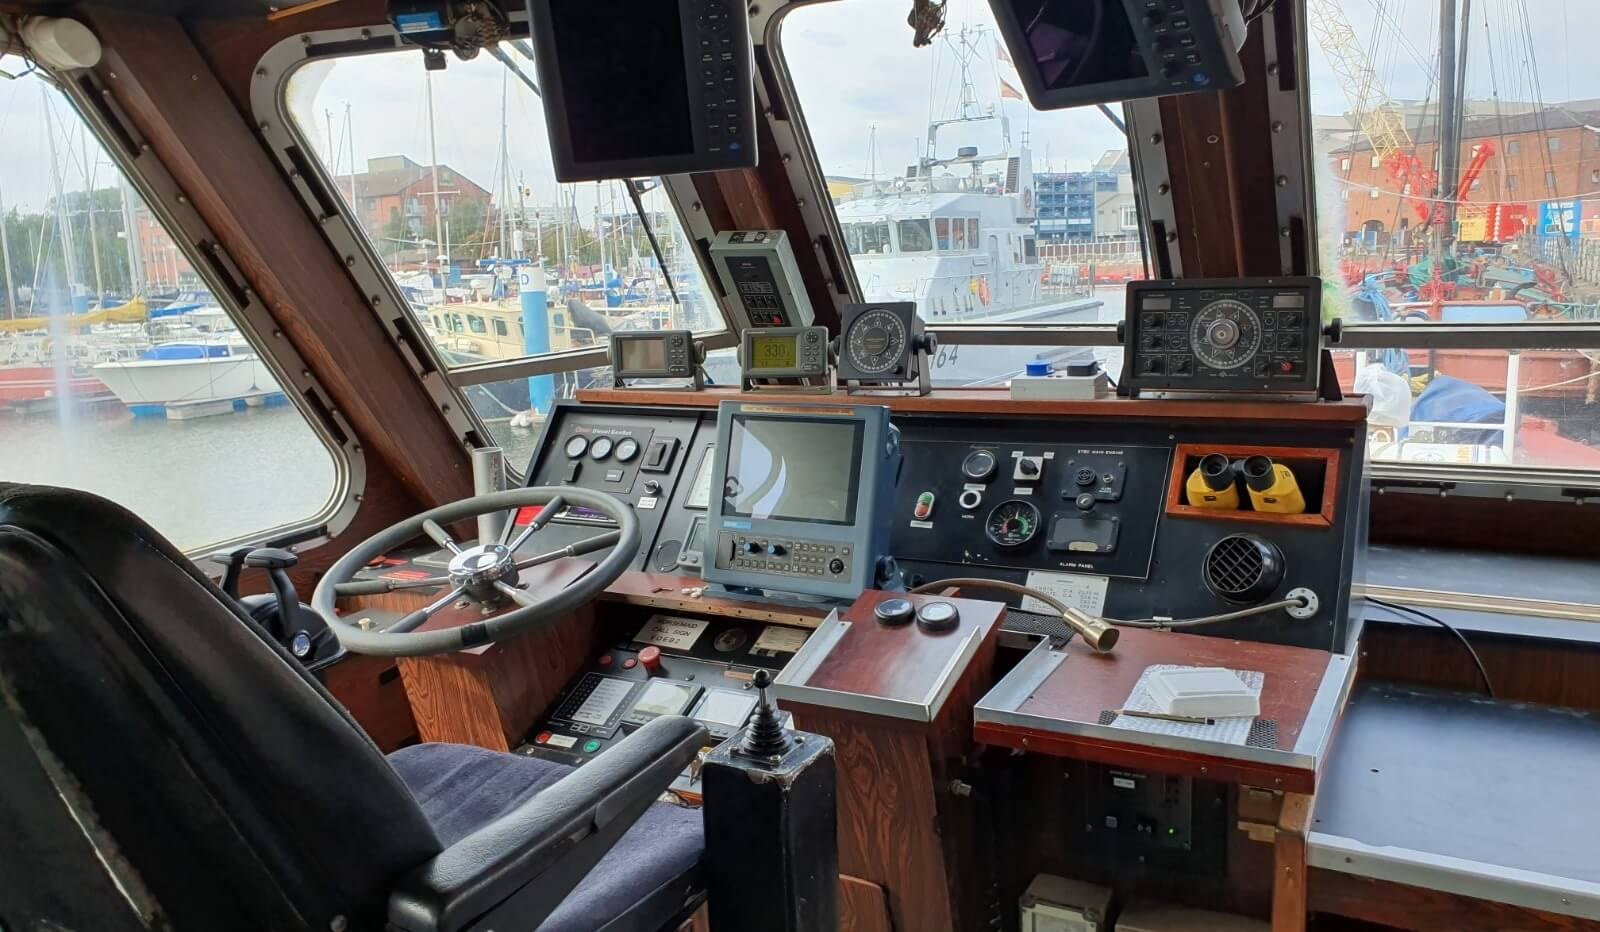 used survey boat in the netherlands for sale 07627 (12)